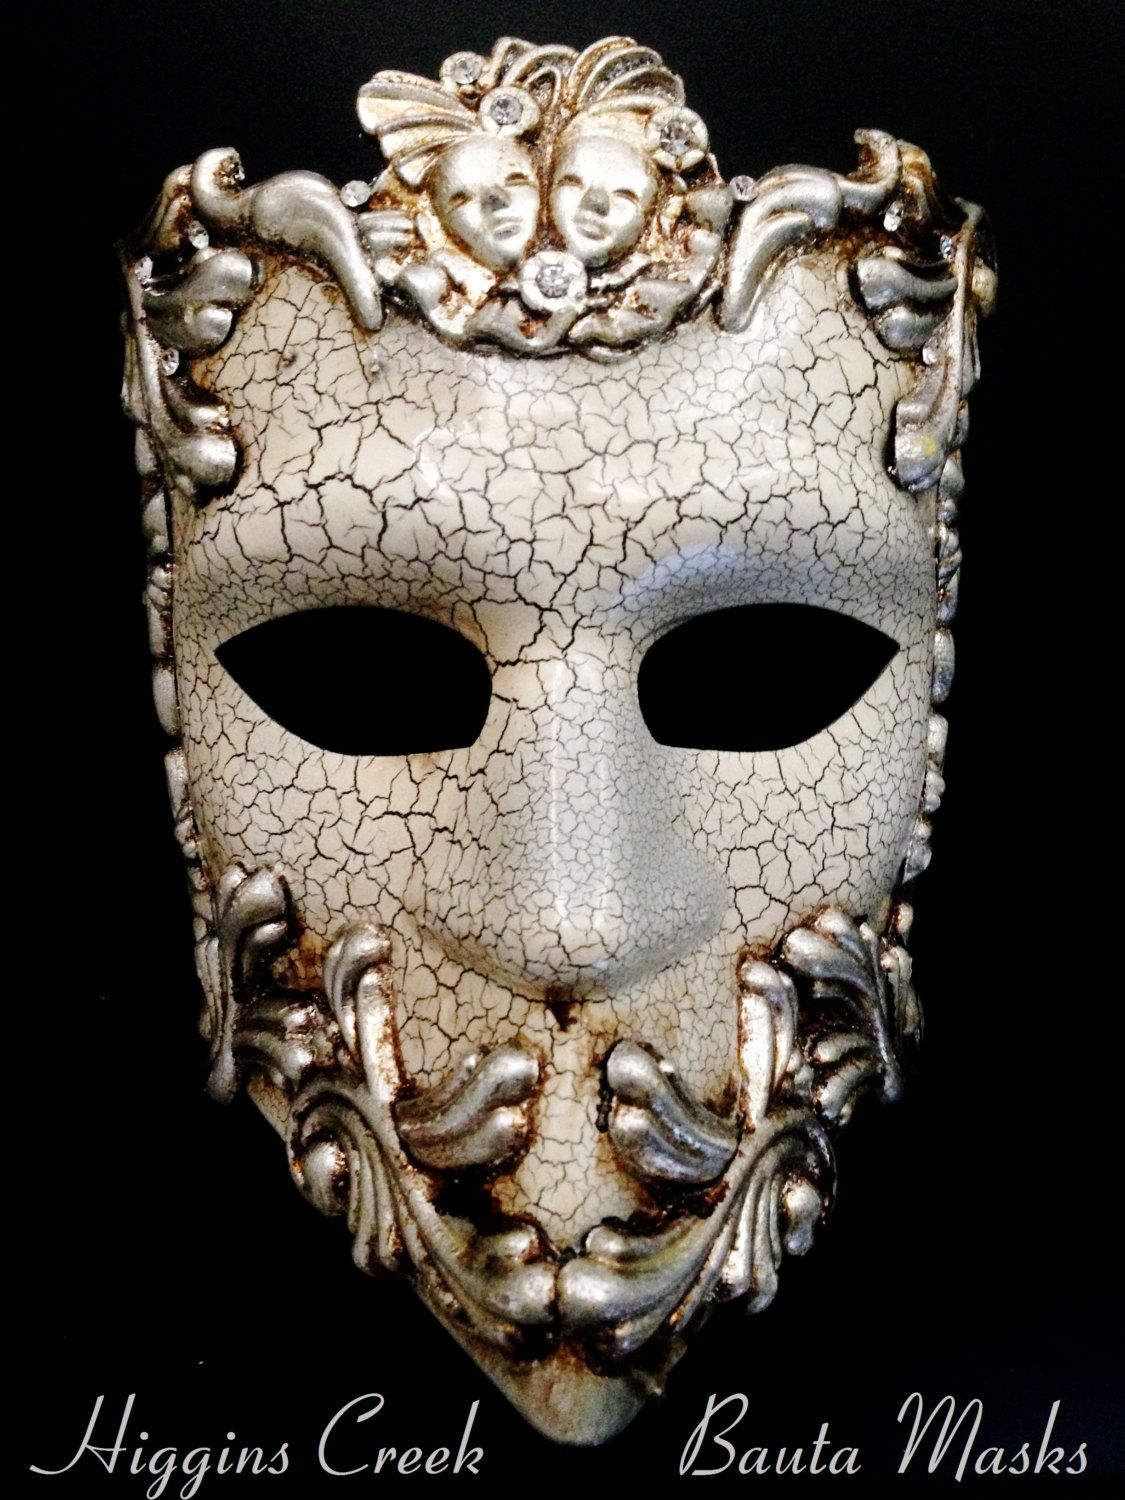 Masquerade mask masquerade mask vine mask metal lace masquerade - Dollar Shipping Mens Bauta Mask Mens Masquerade Mask With Rhinestones Full Face Venetian Masks For Men By Higginscreek On Etsy